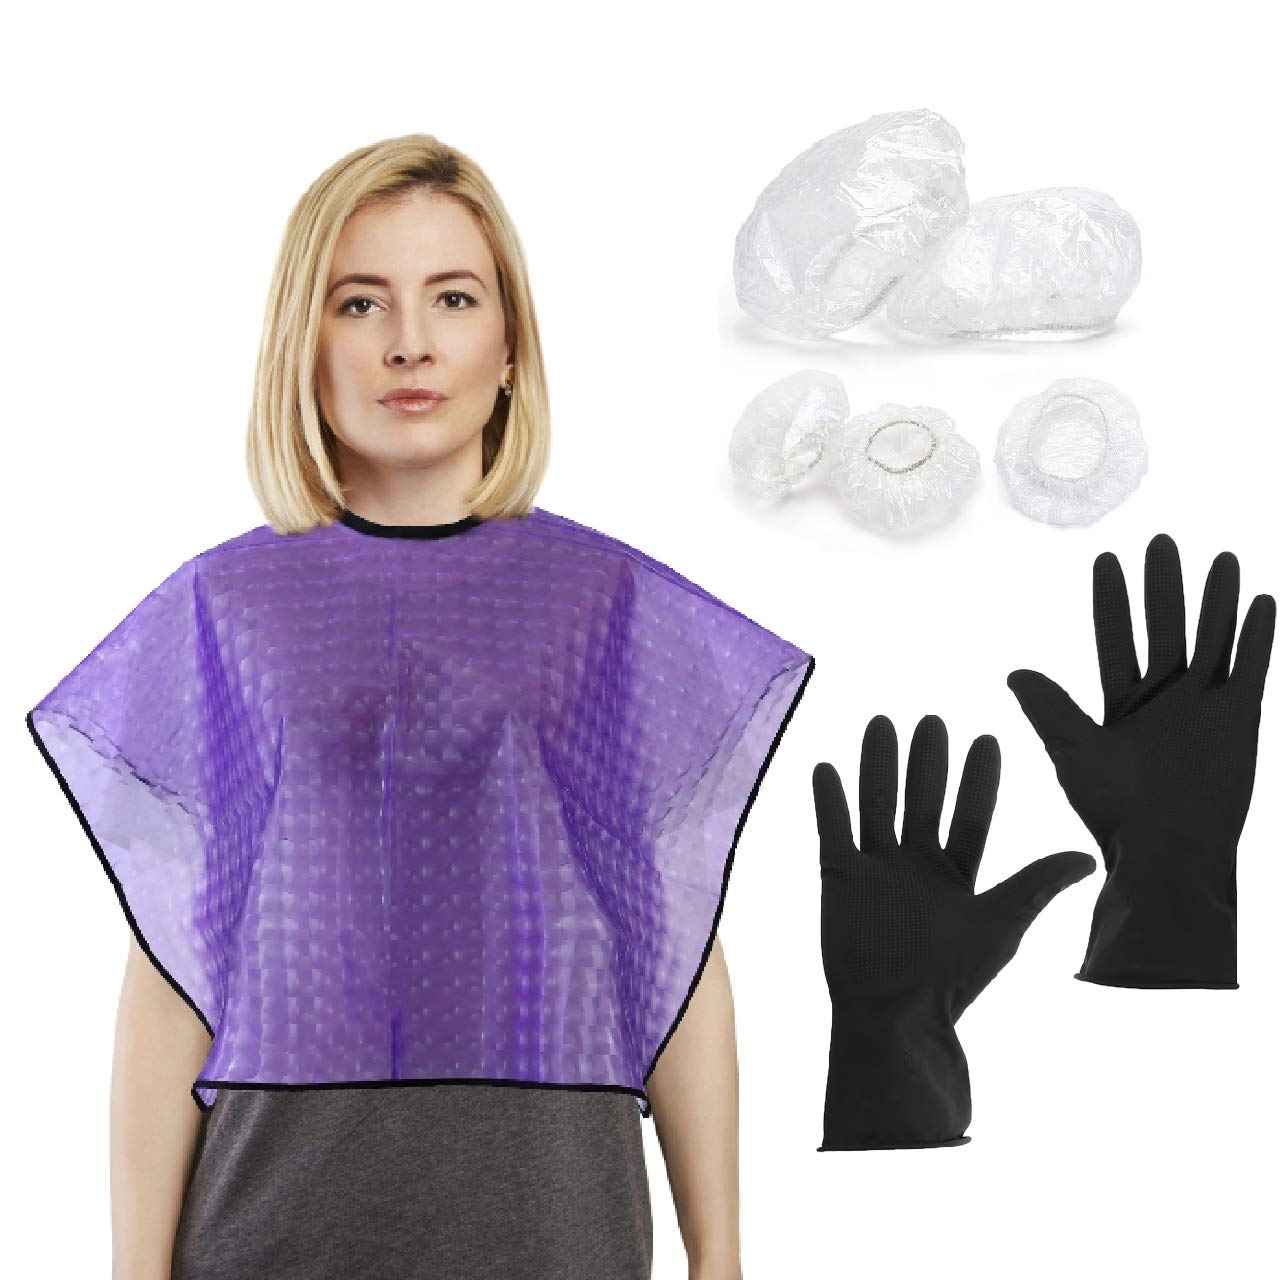 CCbeauty Waterproof Haircut Cape and Reusable Gloves Set with 100Pcs Disposable Ear Protector Shower Earmuffs Hair Styling Coloring Conditioning Hot Oil Cloth for Hair Perming Dyeing Tool Kit (Purple)